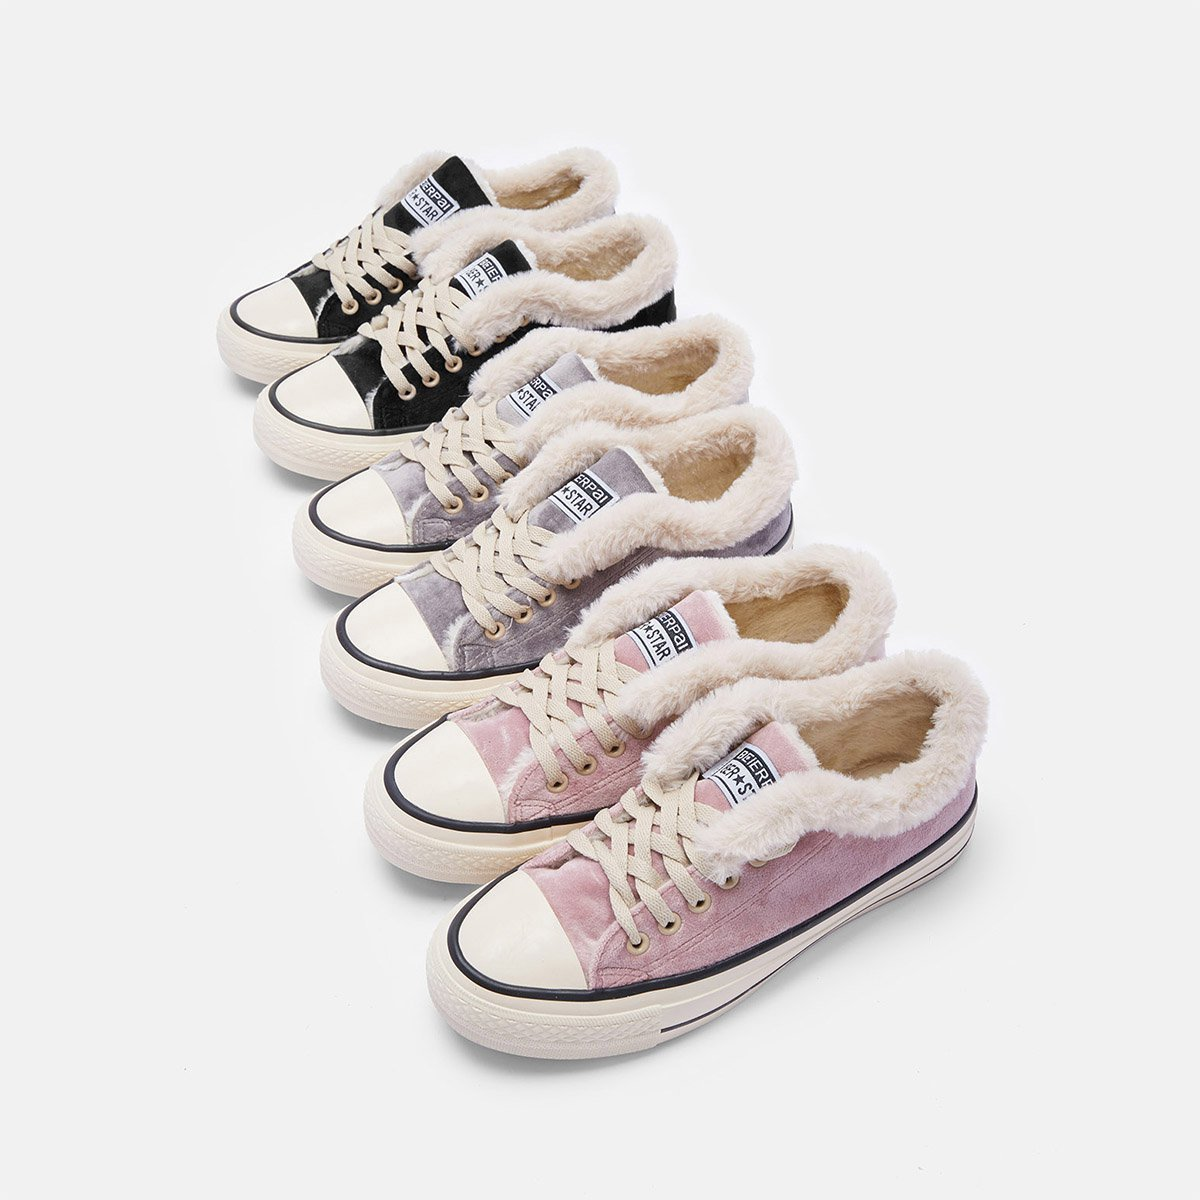 Womens Canvas Snow Sneakers Fur Lined Shoes